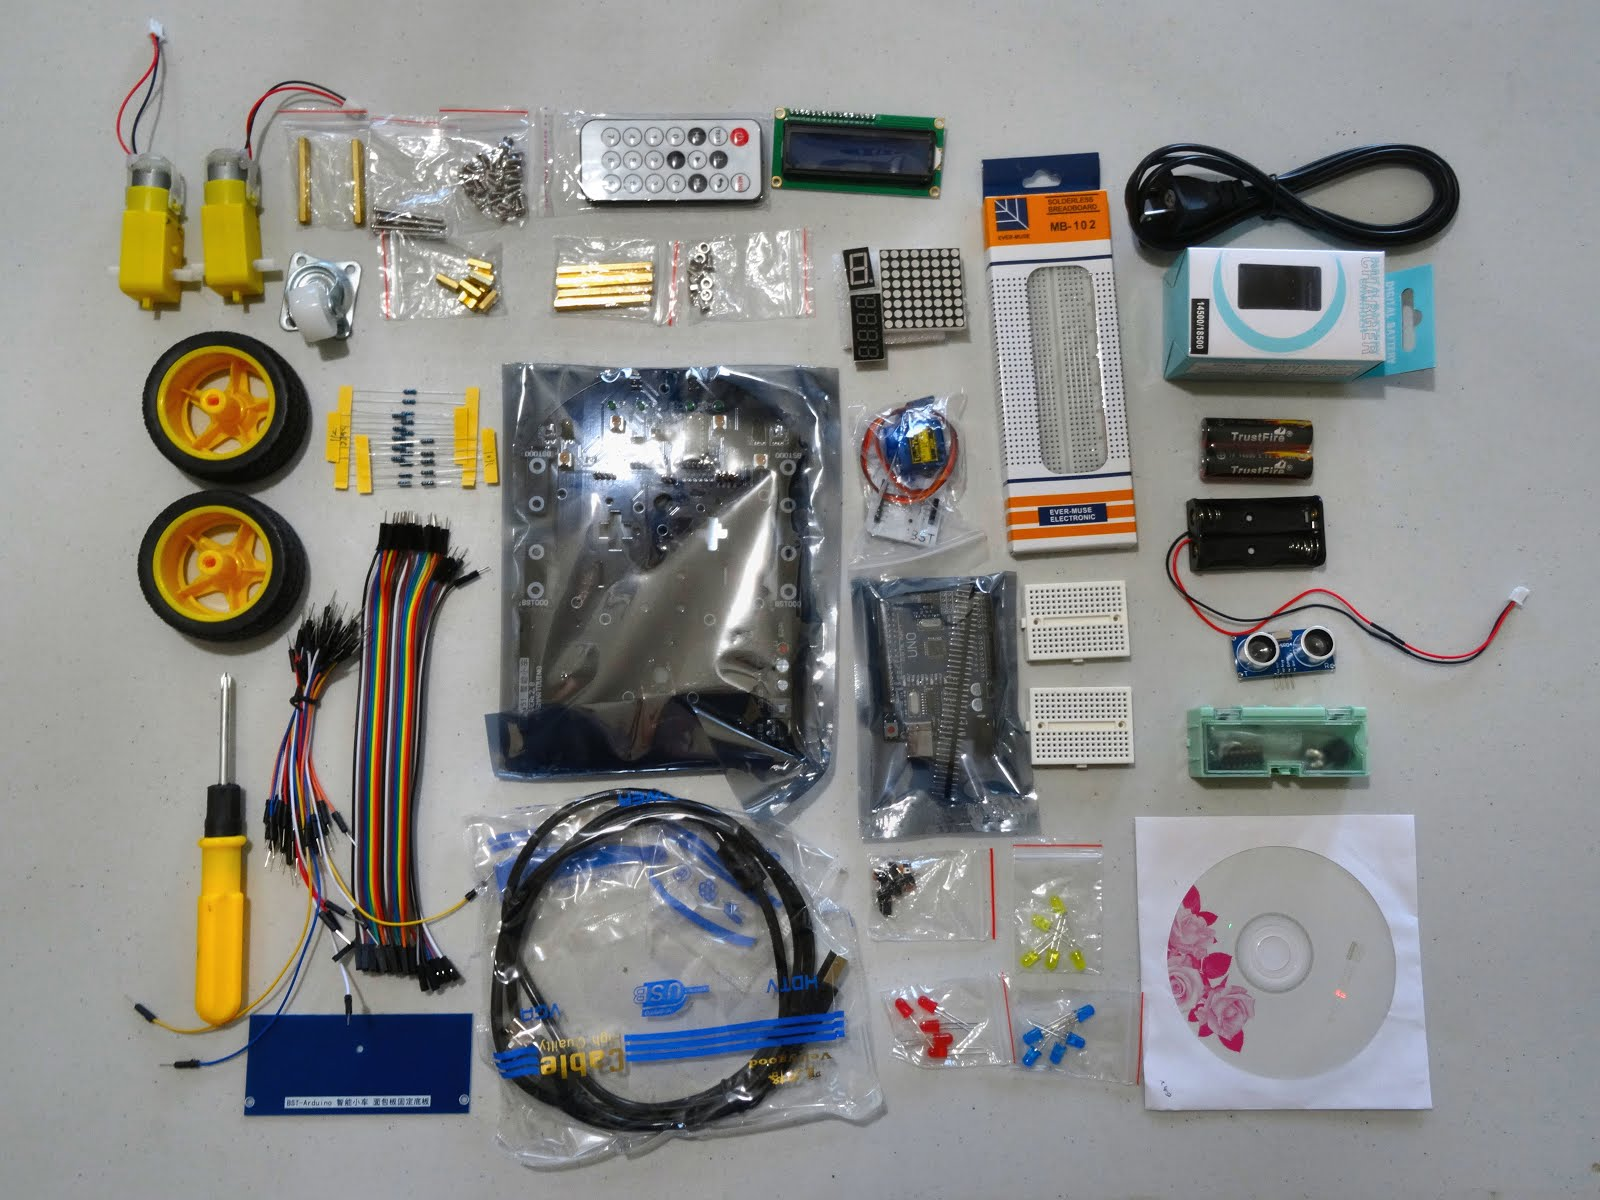 Mitov software just received another cool sm arduino